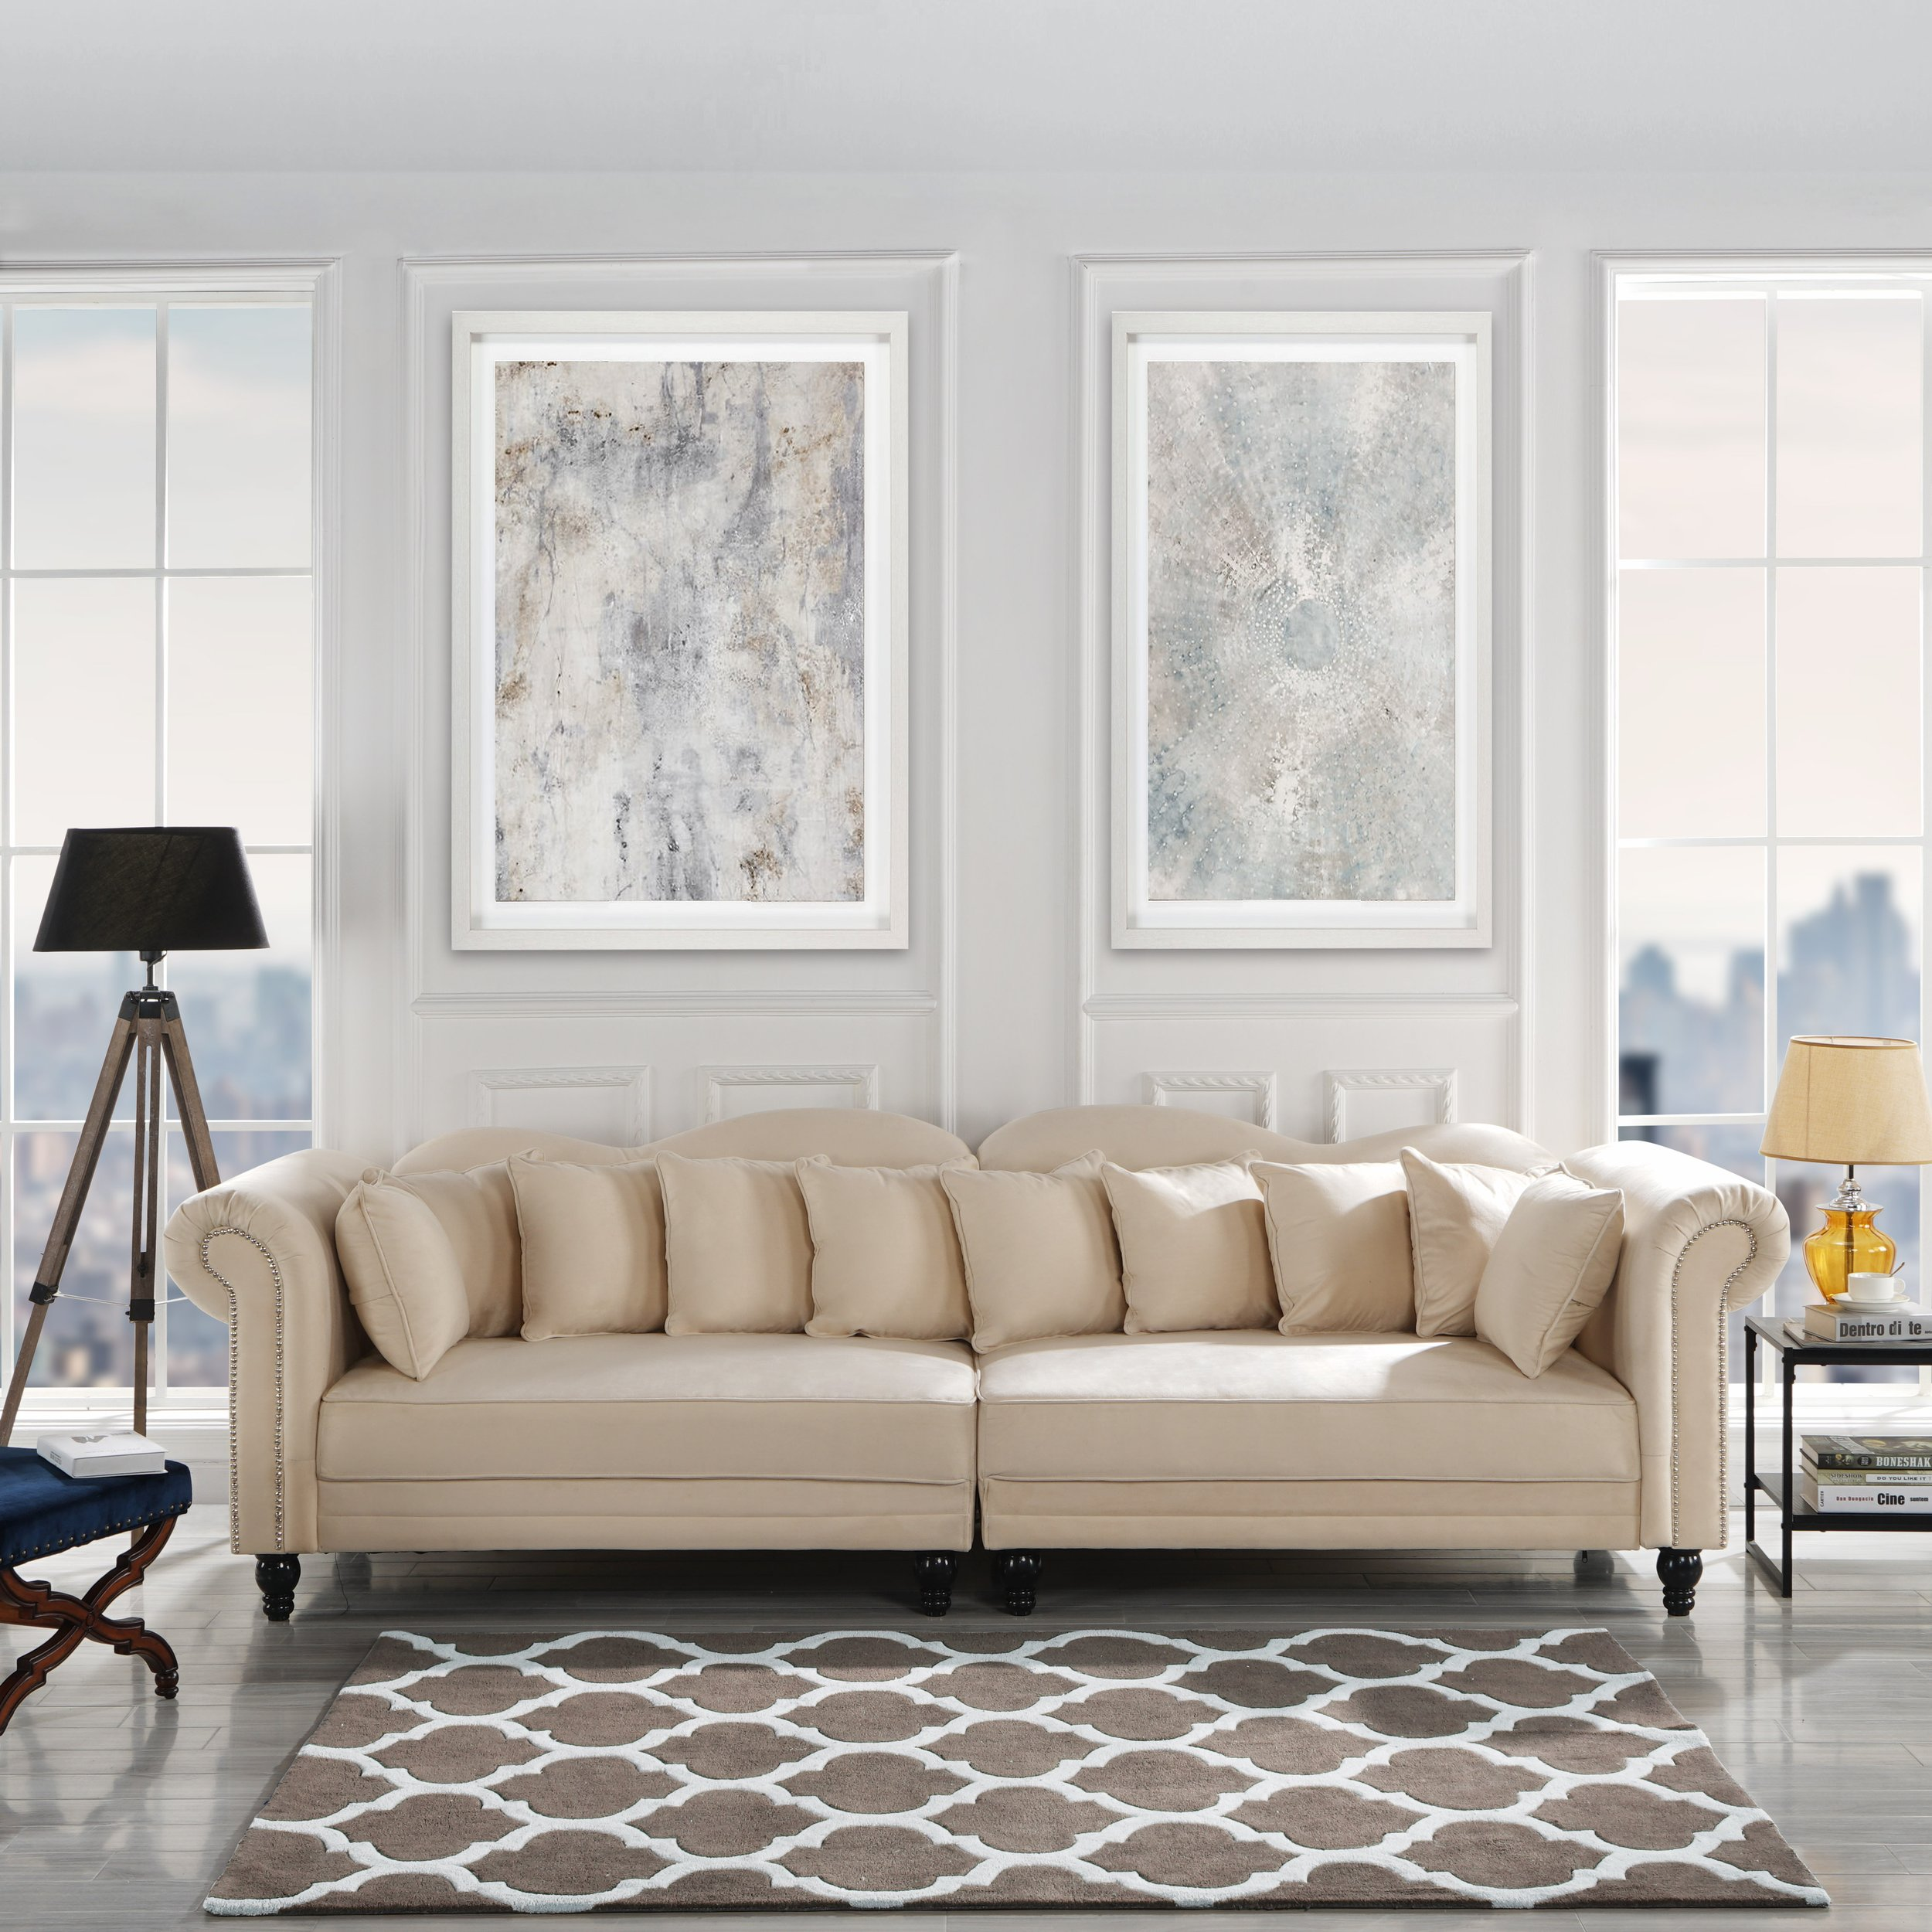 Details about Chesterfield Large Living Room Sofa, Classic Velvet  Upholstered Couch, Beige